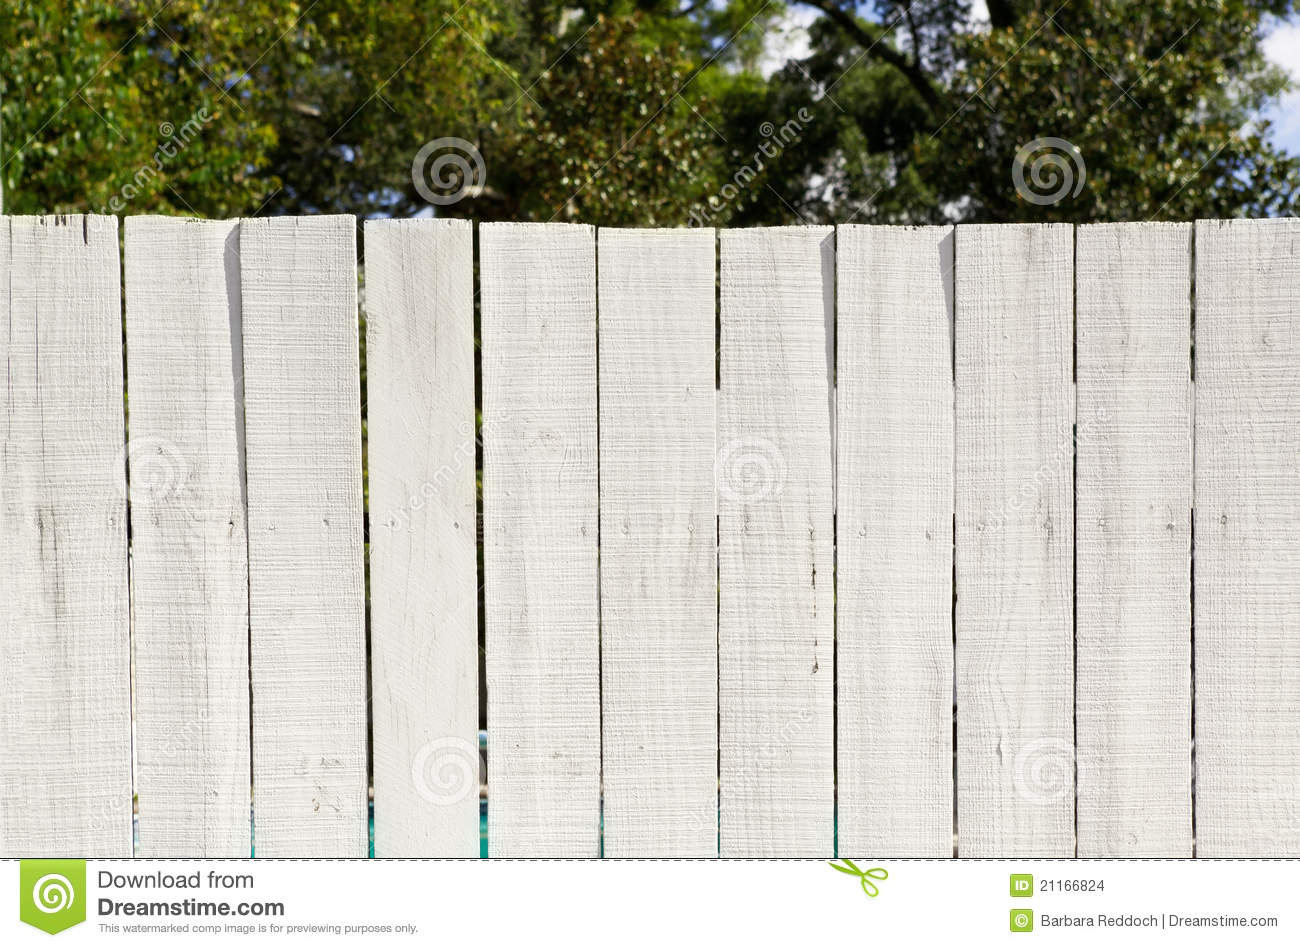 Fences: Black People and Troy States